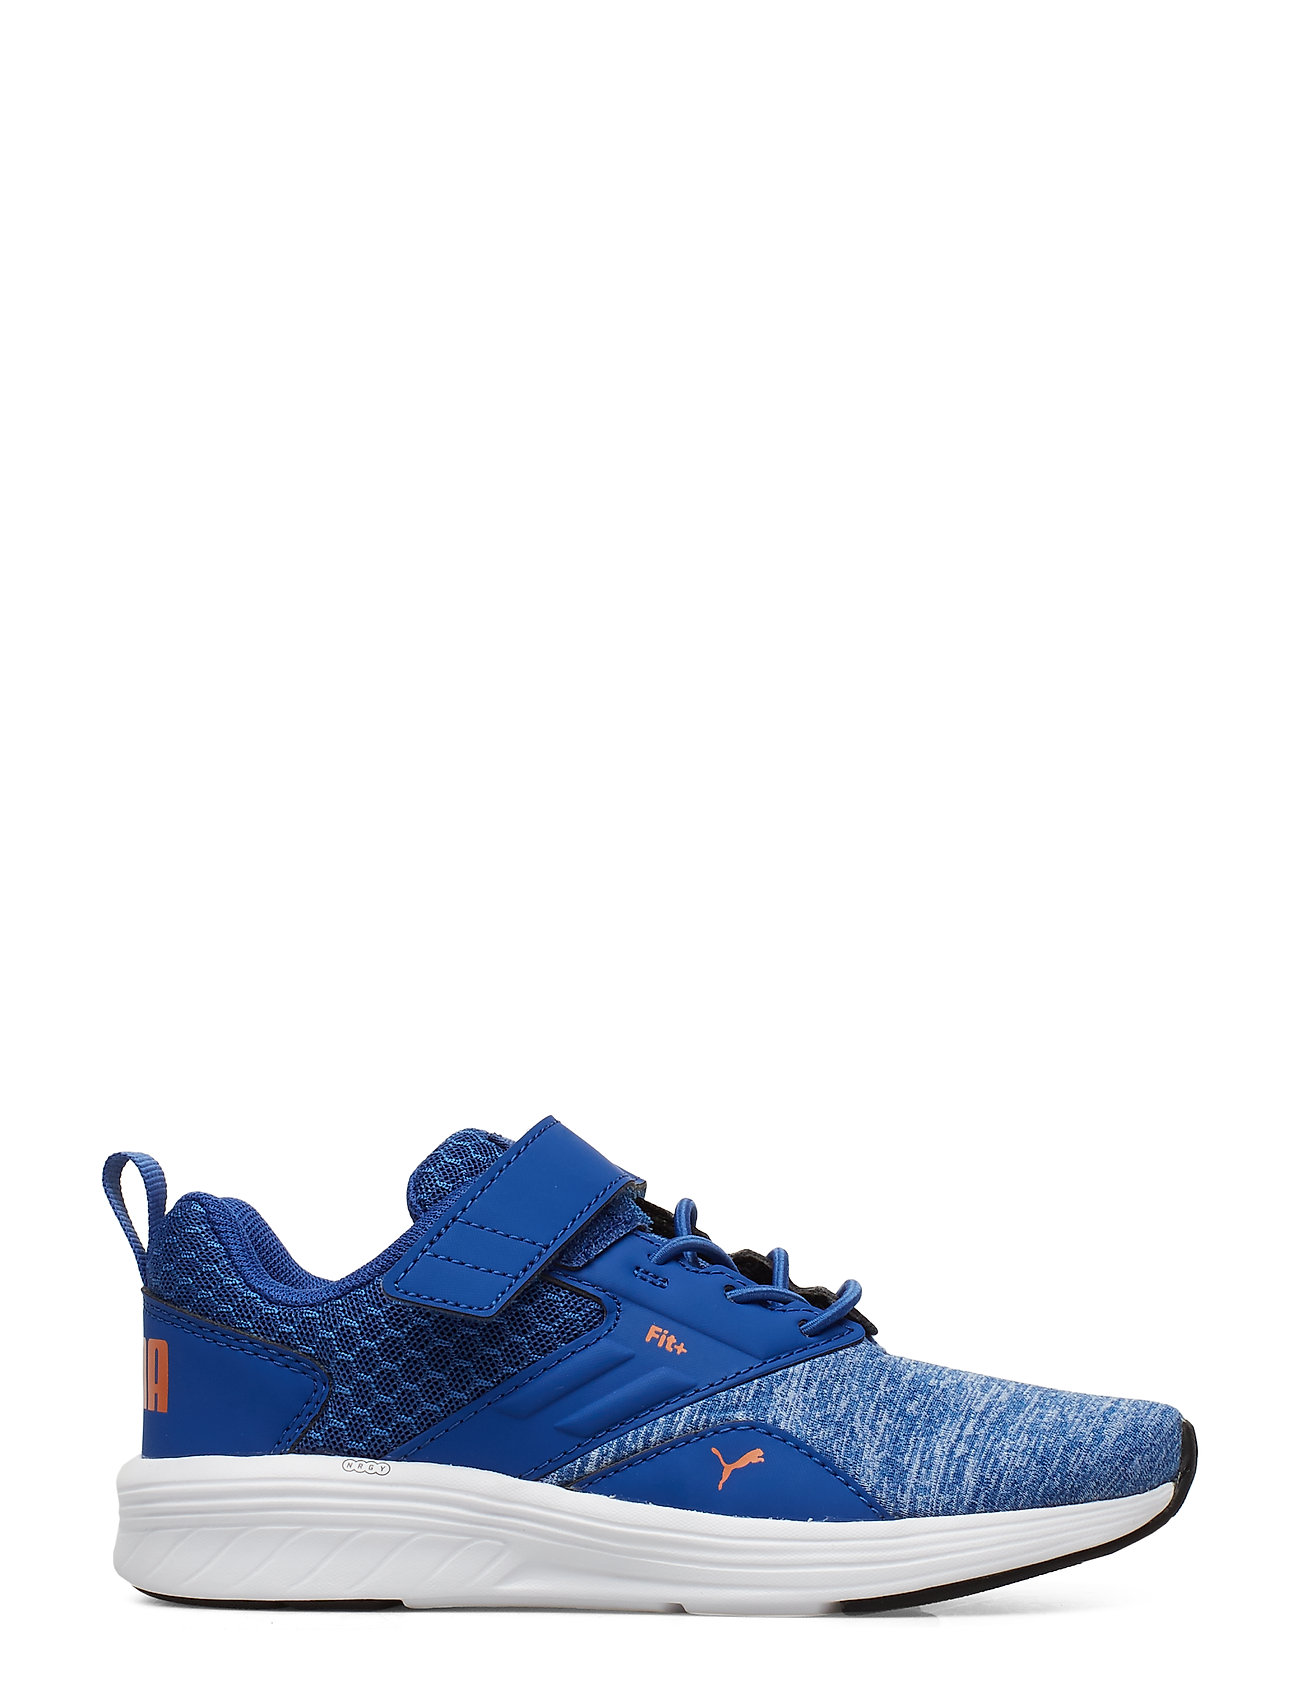 Nrgy Comet V Ps Shoes Sports Shoes Running/training Shoes Blå PUMA